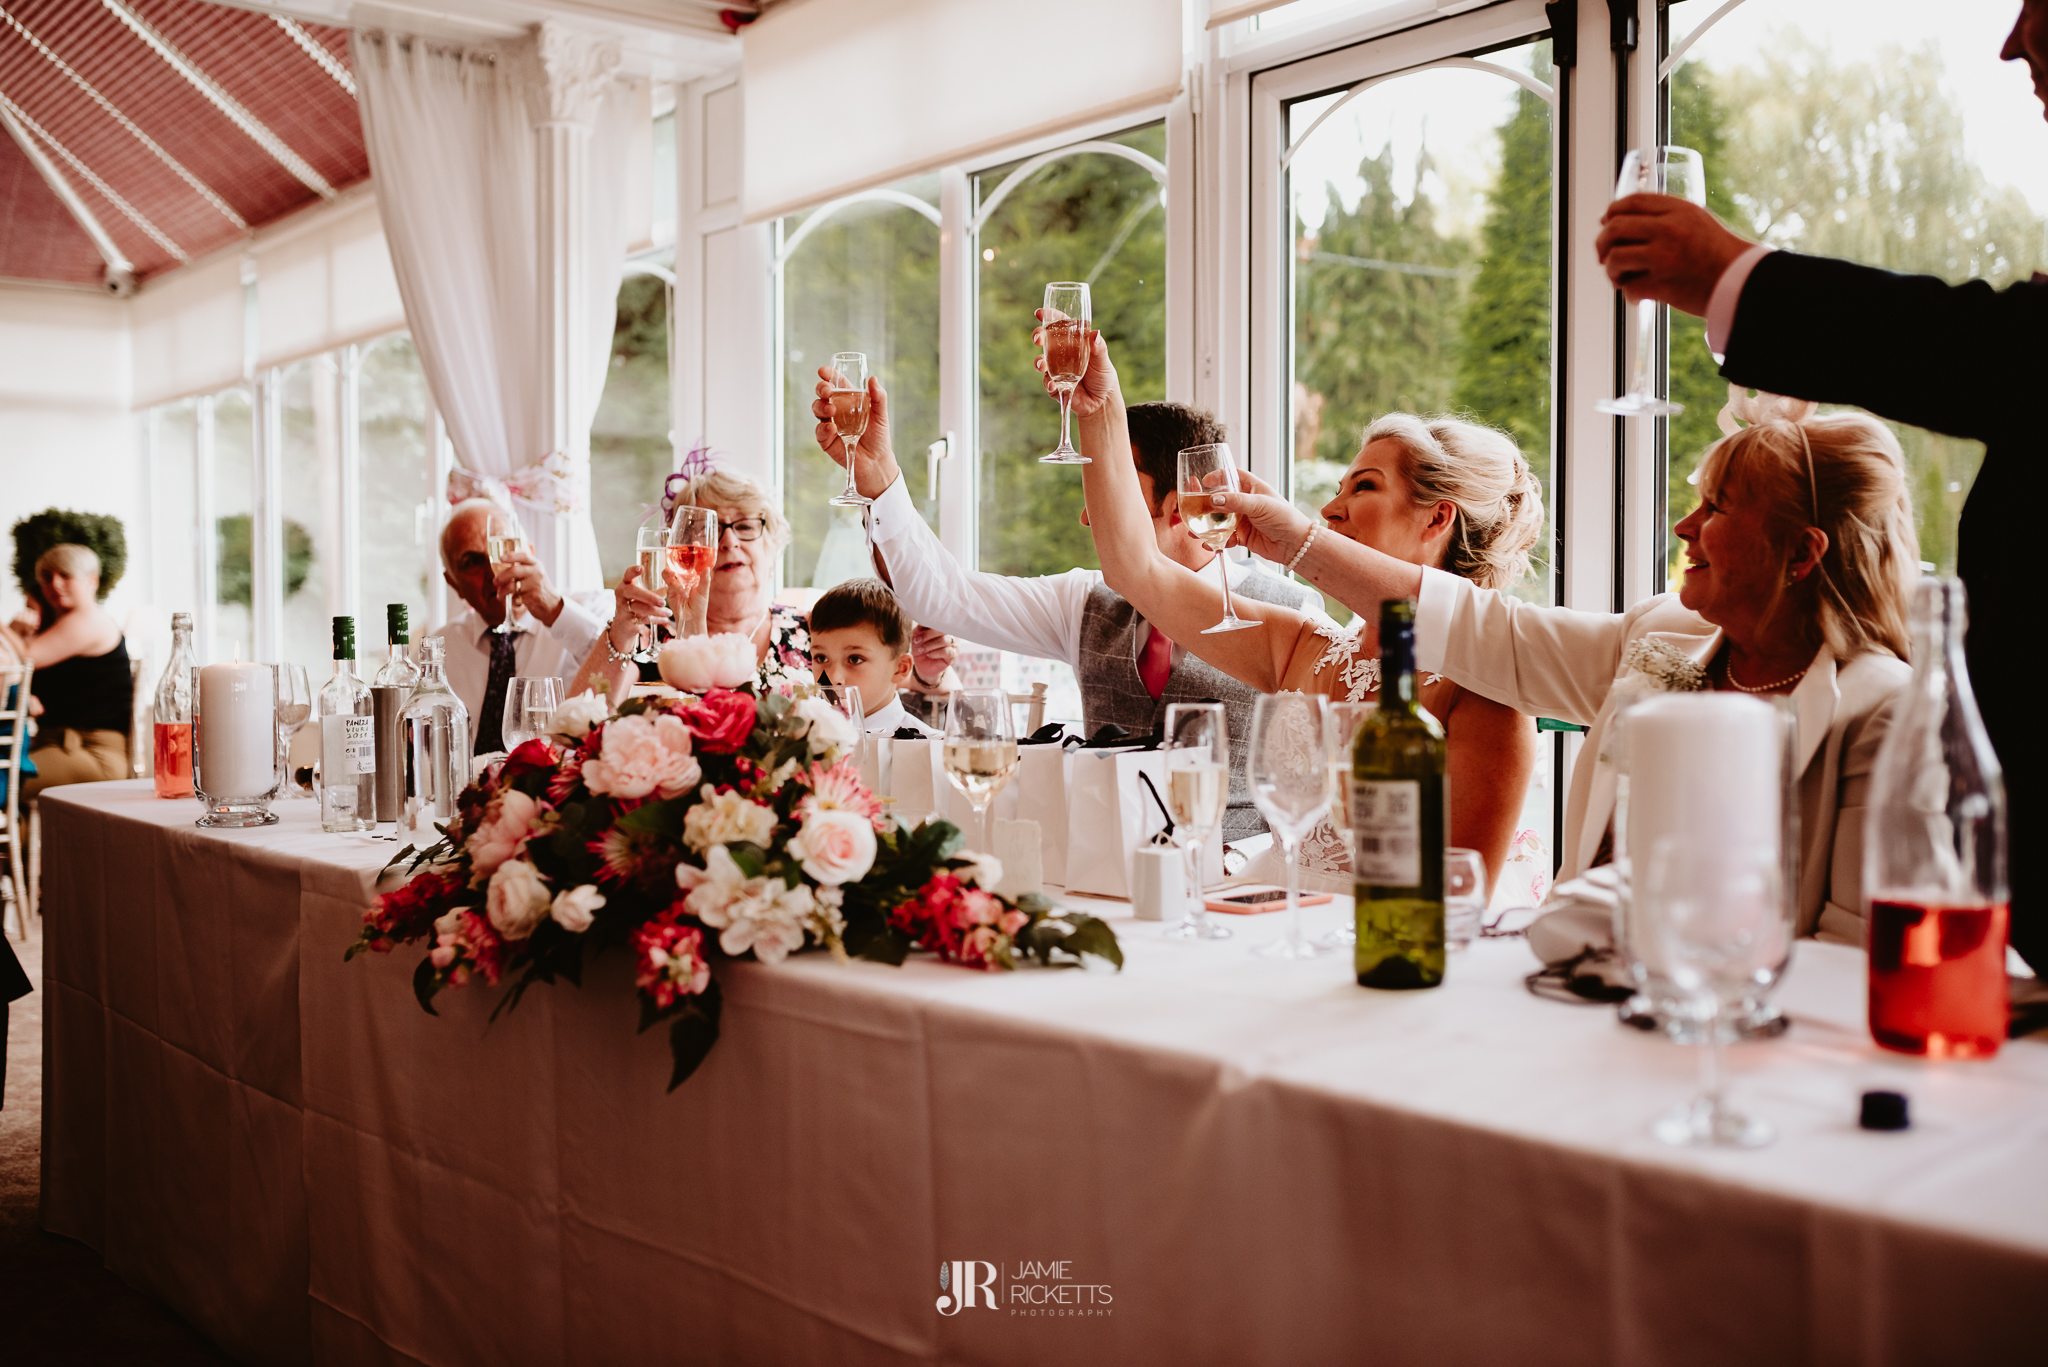 Wroxeter-Hotel-Wedding-Photography-In-Shropshire-By-Shropshire-Wedding-Photographer-Jamie-Ricketts-158.JPG